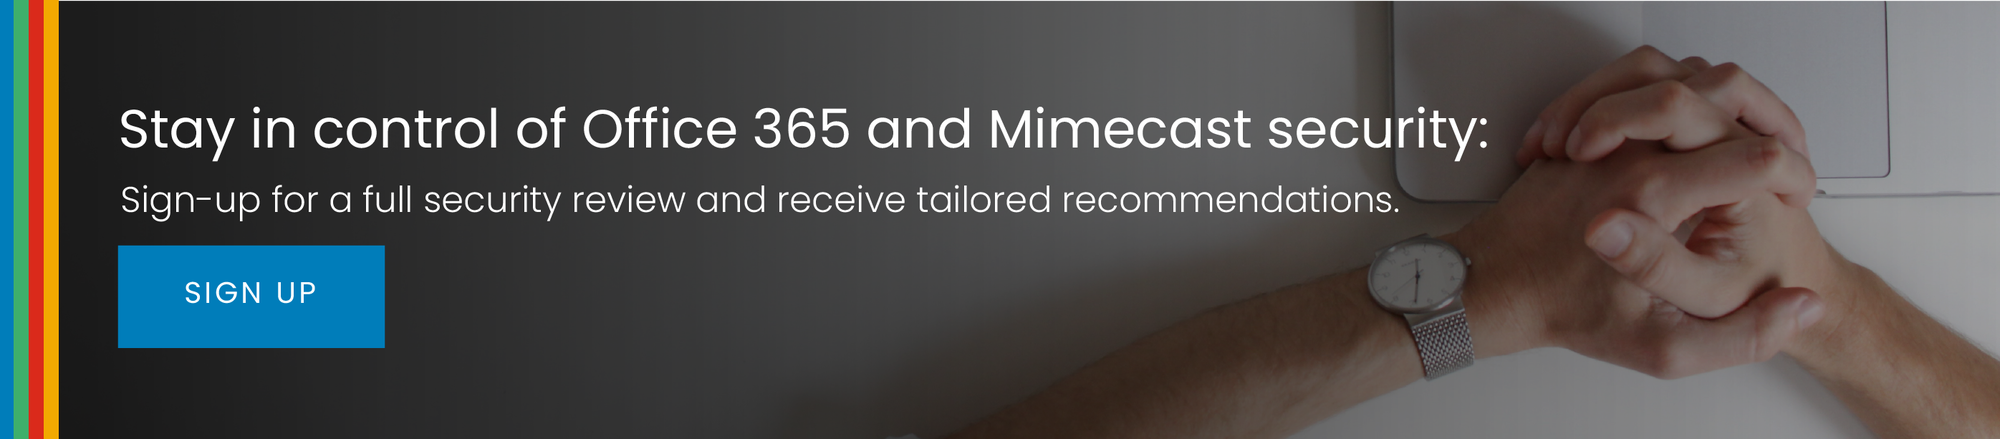 Office 365 and Mimecast security review CTA